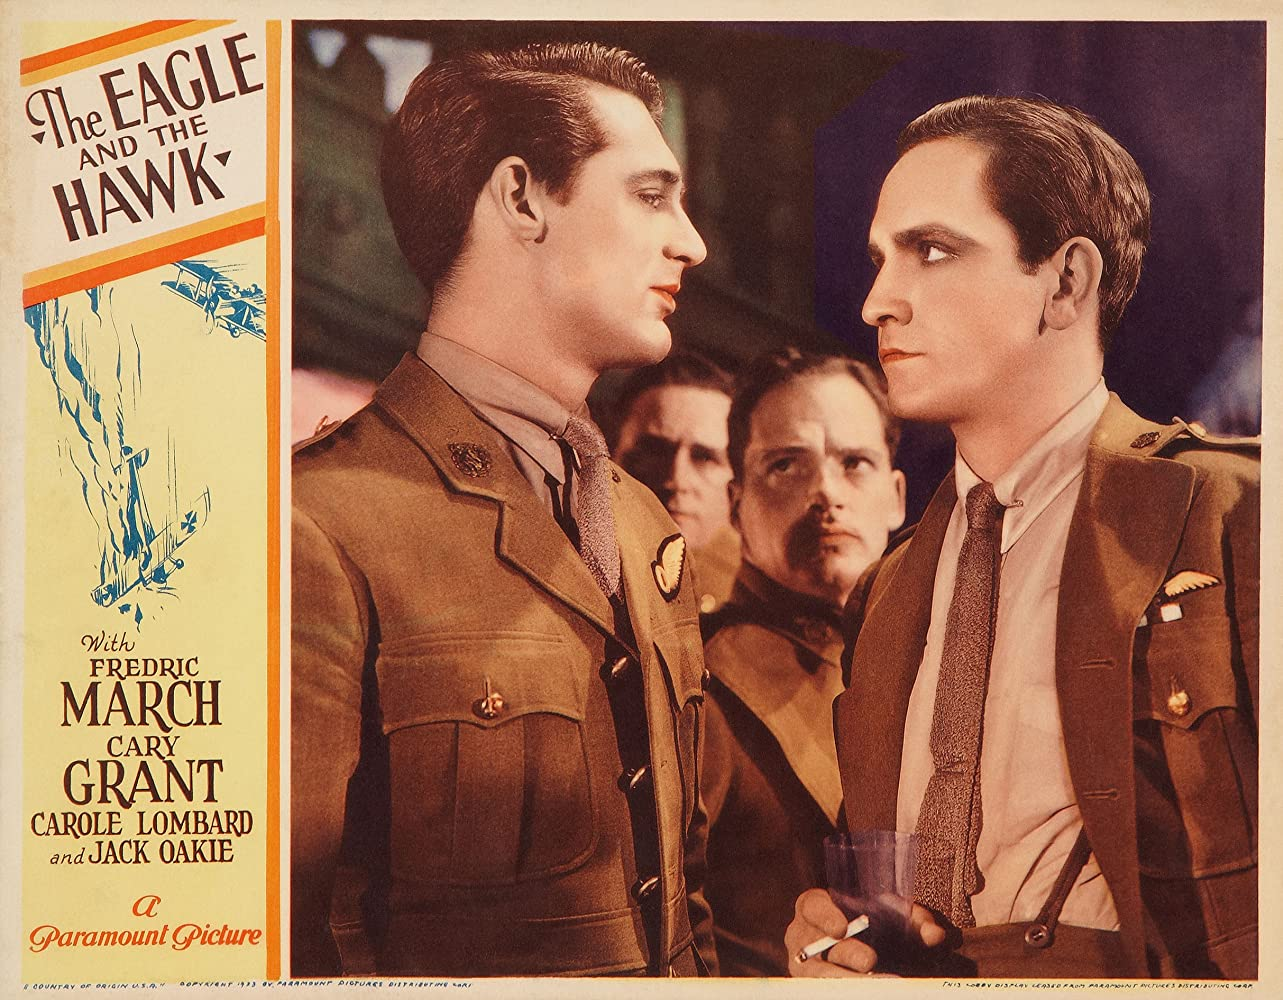 Cary Grant and Fredric March in The Eagle and the Hawk (1933)